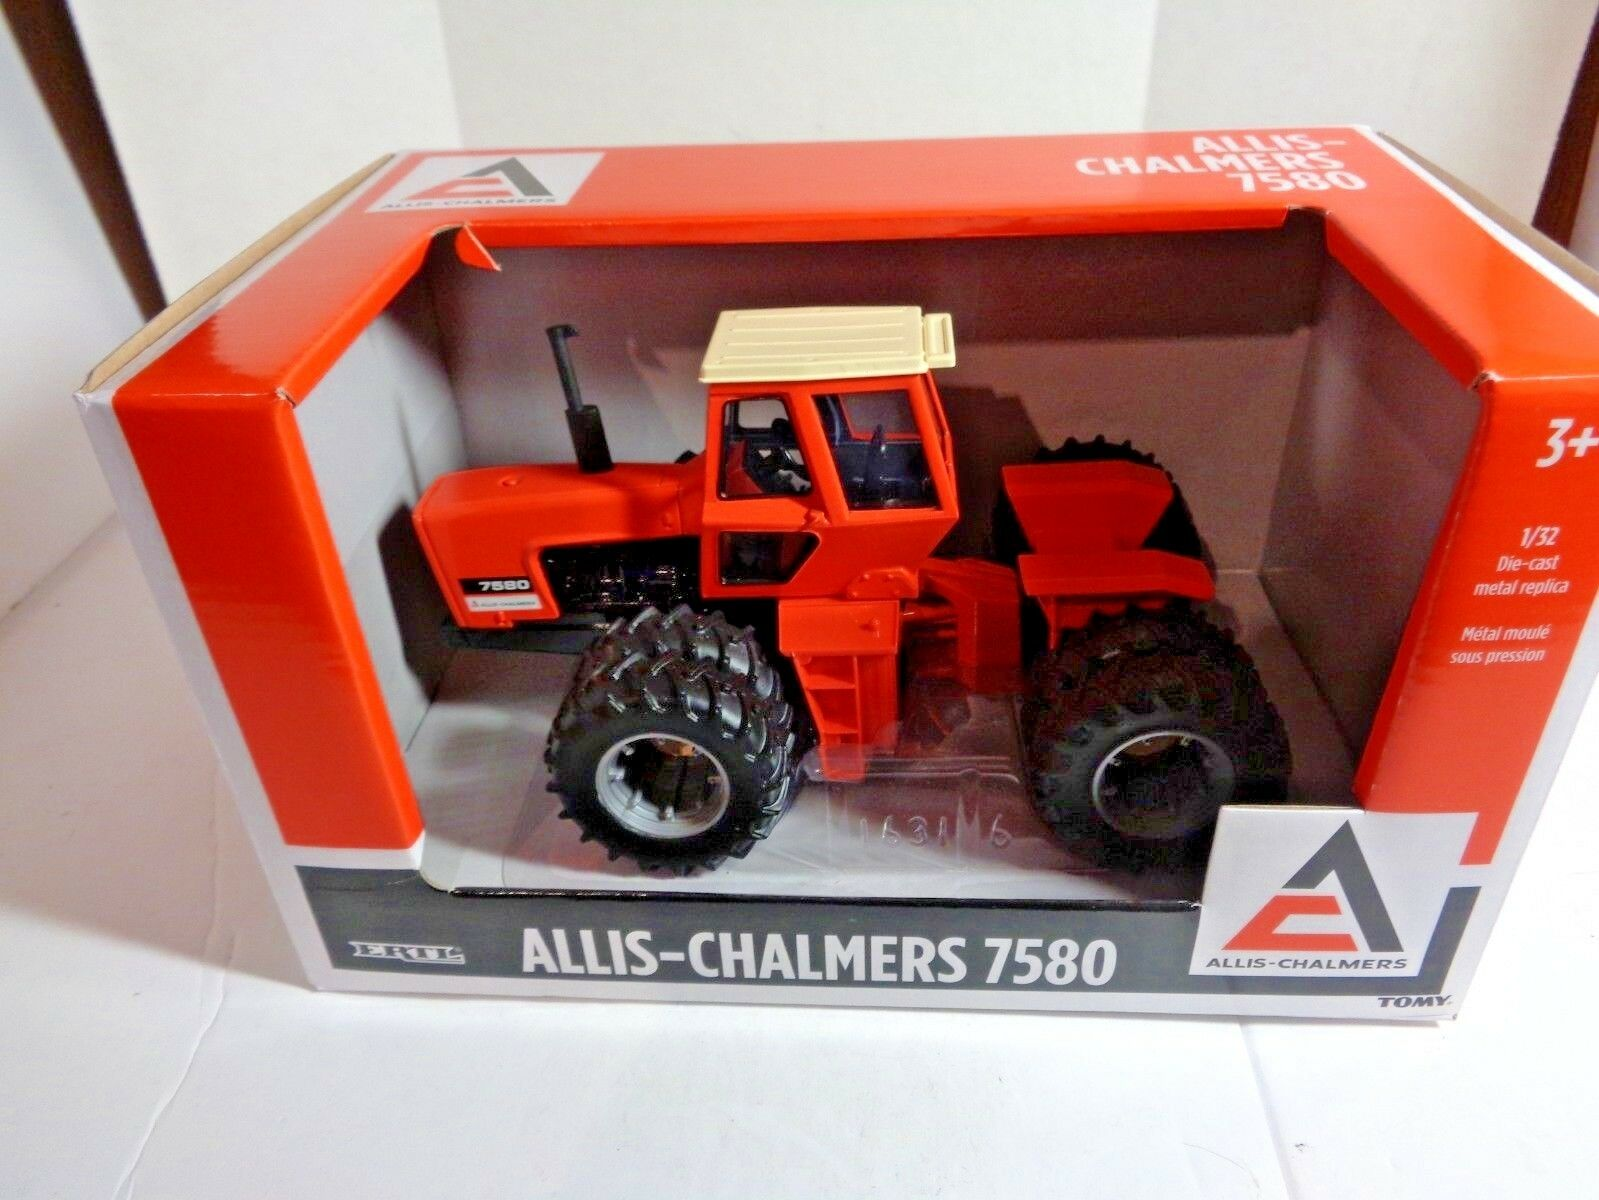 Allis-Chalmers 7580 Tractor in 1 32 Scale Scale Scale by Ertl 32c12d